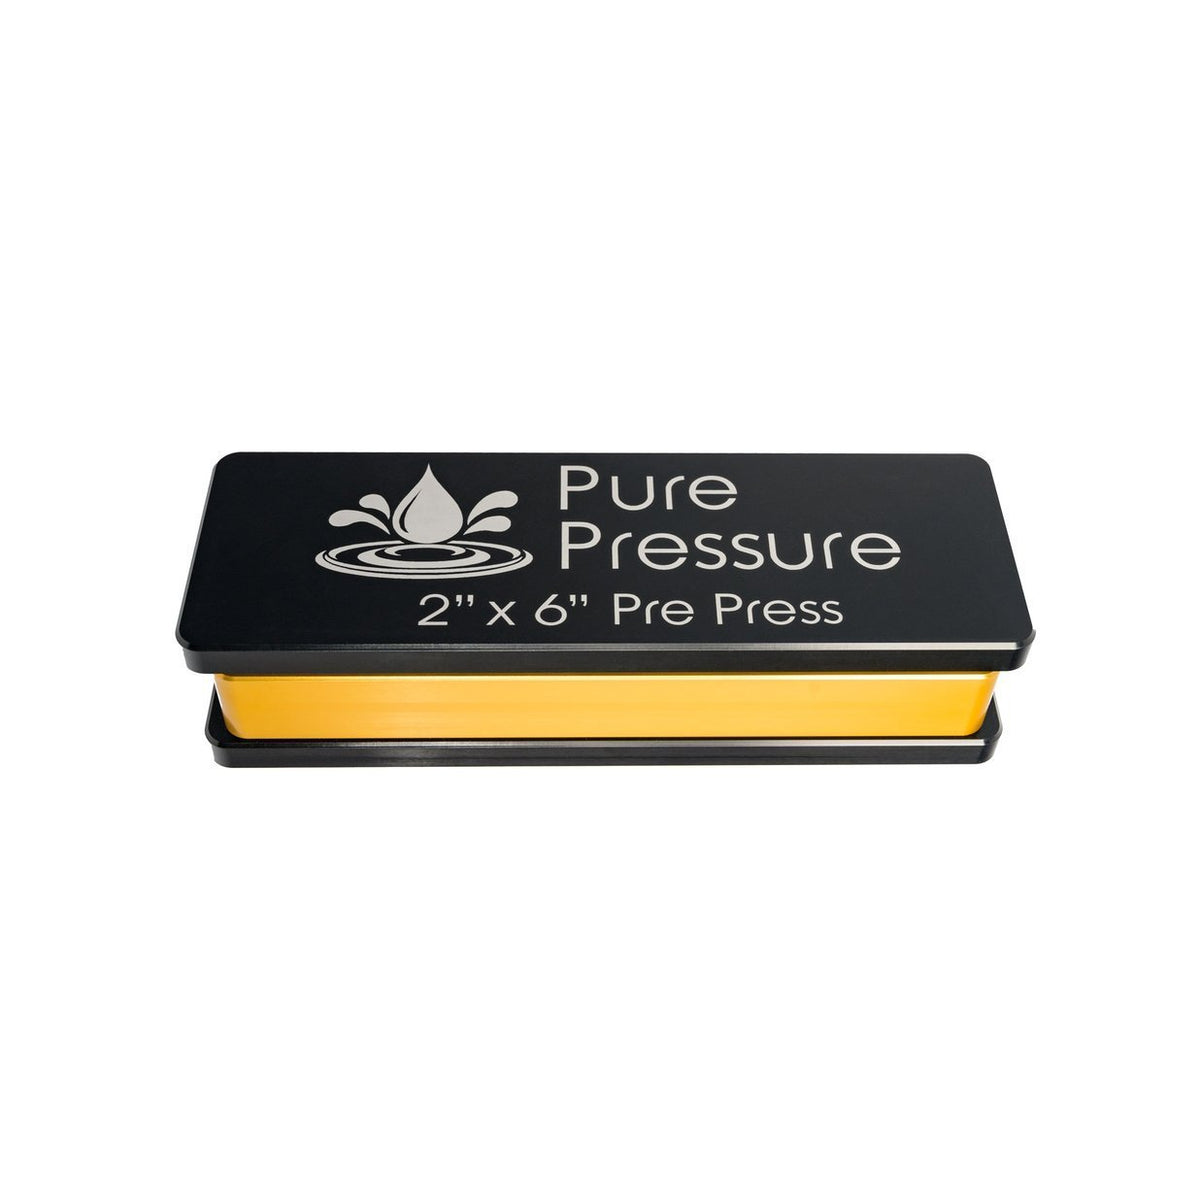 "Pure Pressure Pure Pressure 2"" x 6"" Pre-Press Mold"